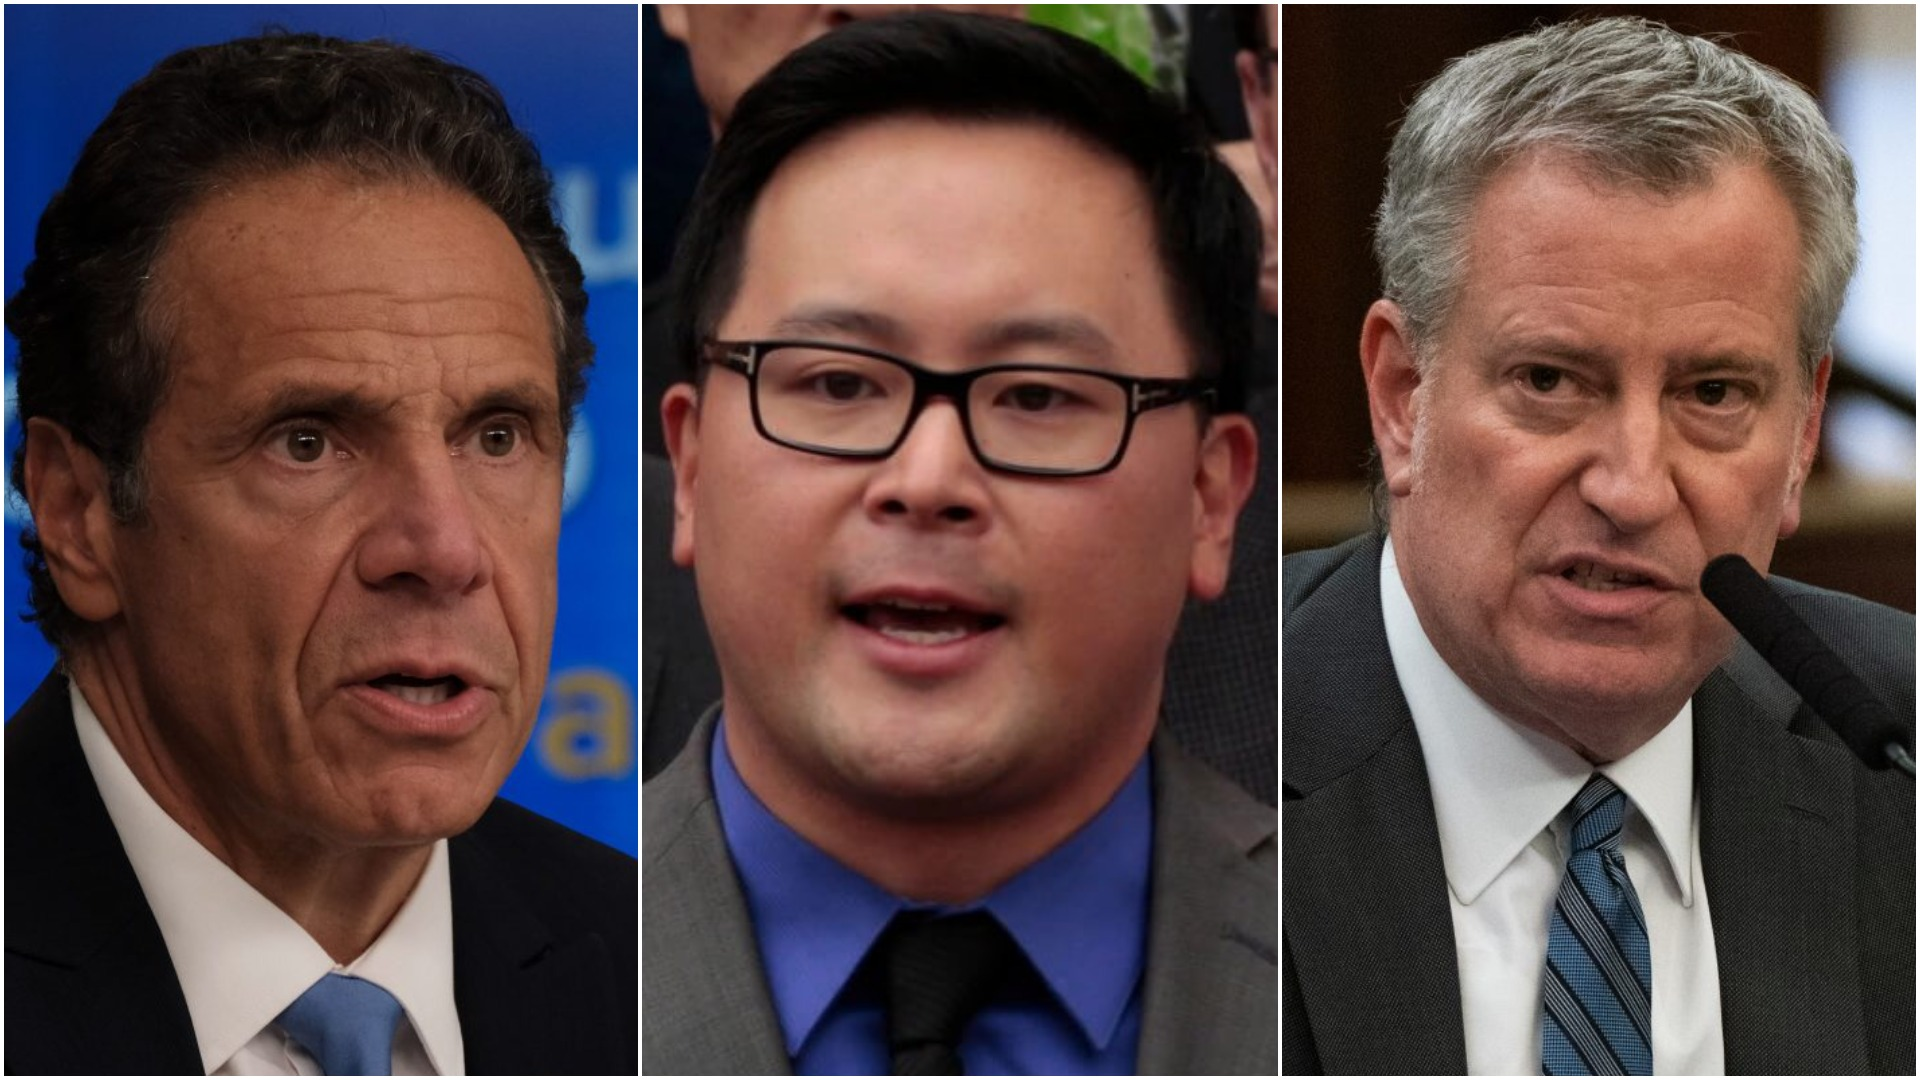 Cuomo Unravelled: Critics Speak Out Against Aggressive Governor And His Malpractices